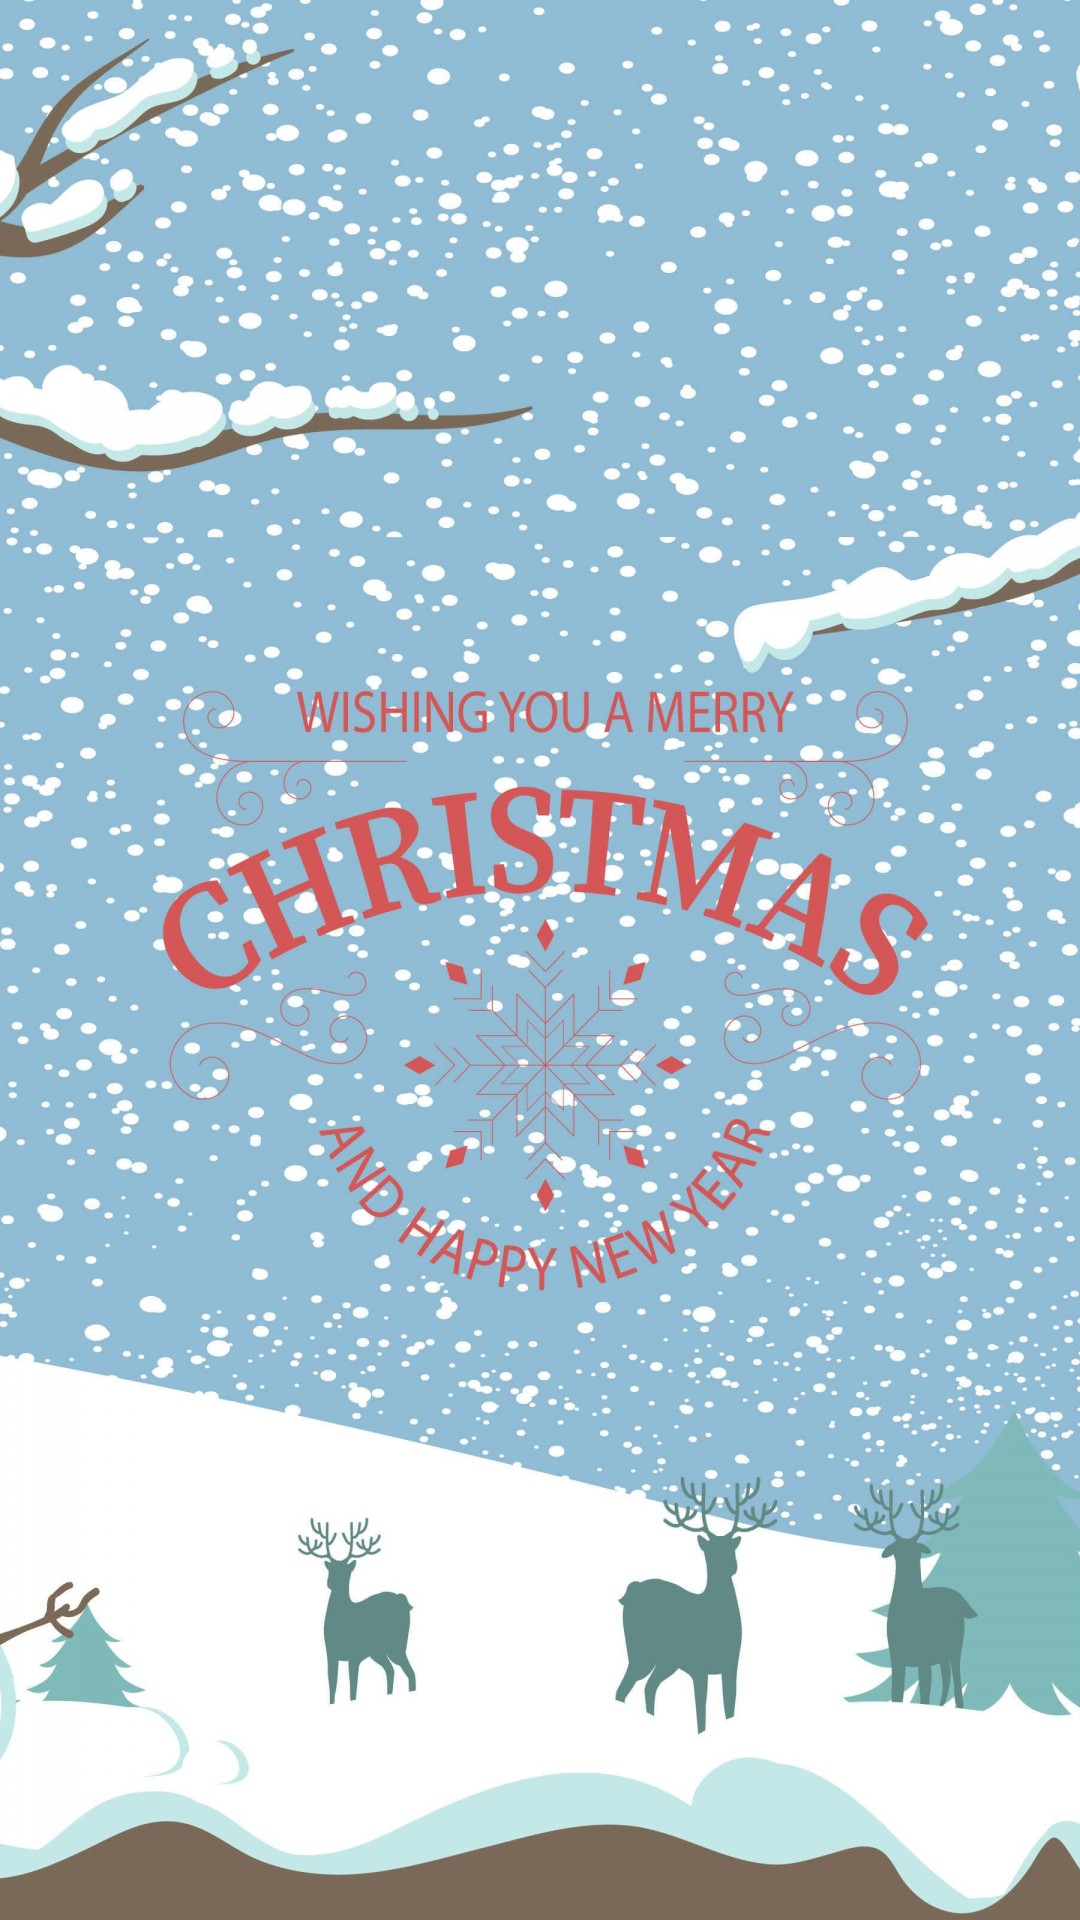 Merry Christmas Illustration Wallpaper for SAMSUNG Galaxy Note 3